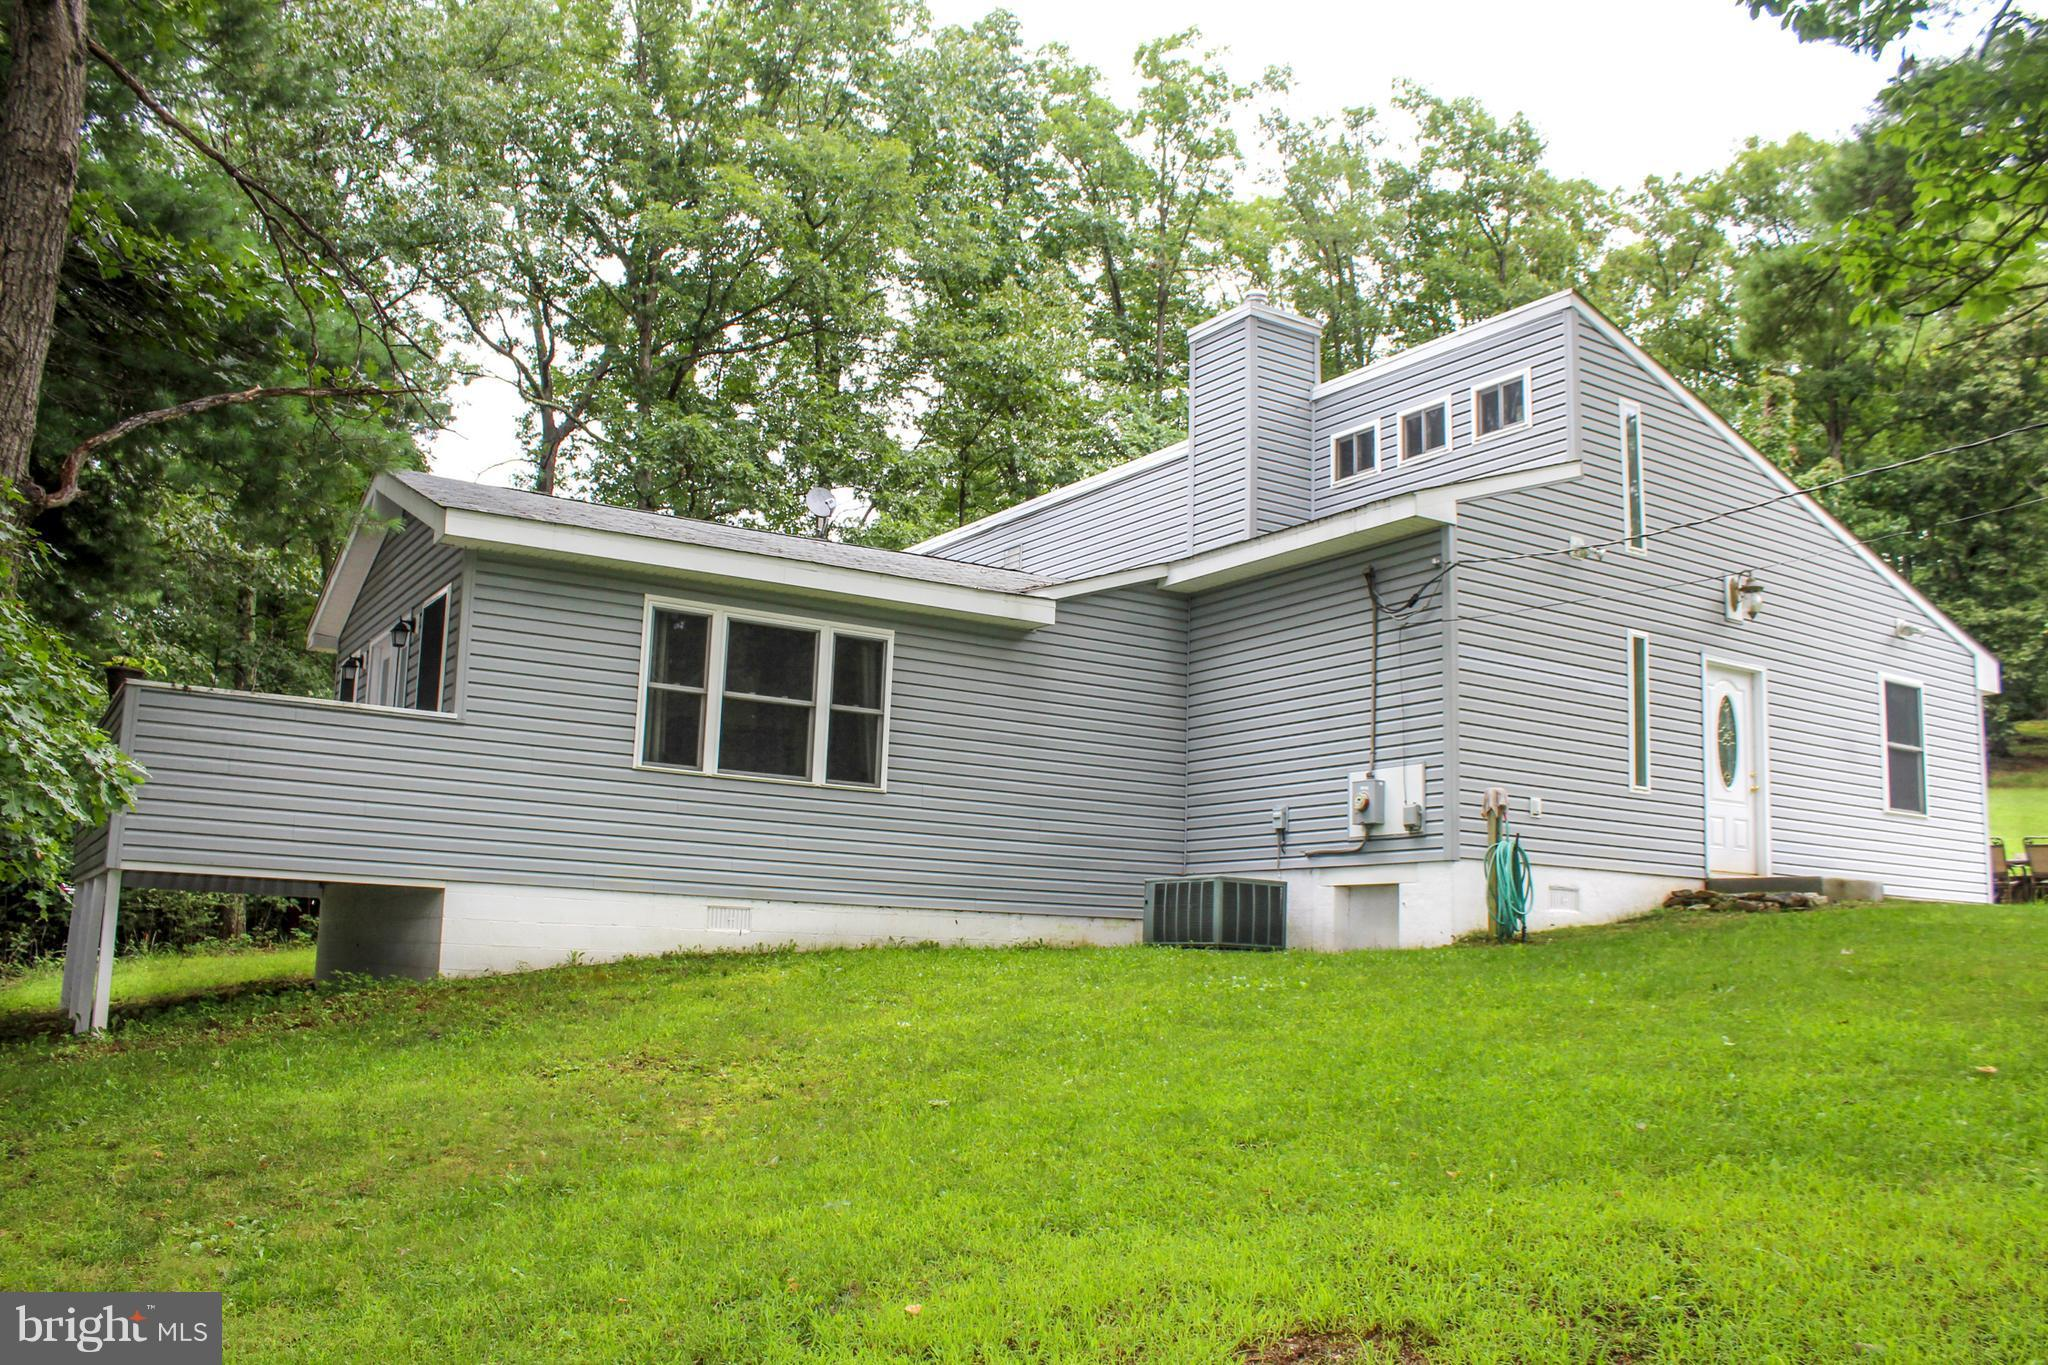 1457 SIRBAUGH ROAD, HIGH VIEW, WV 26808